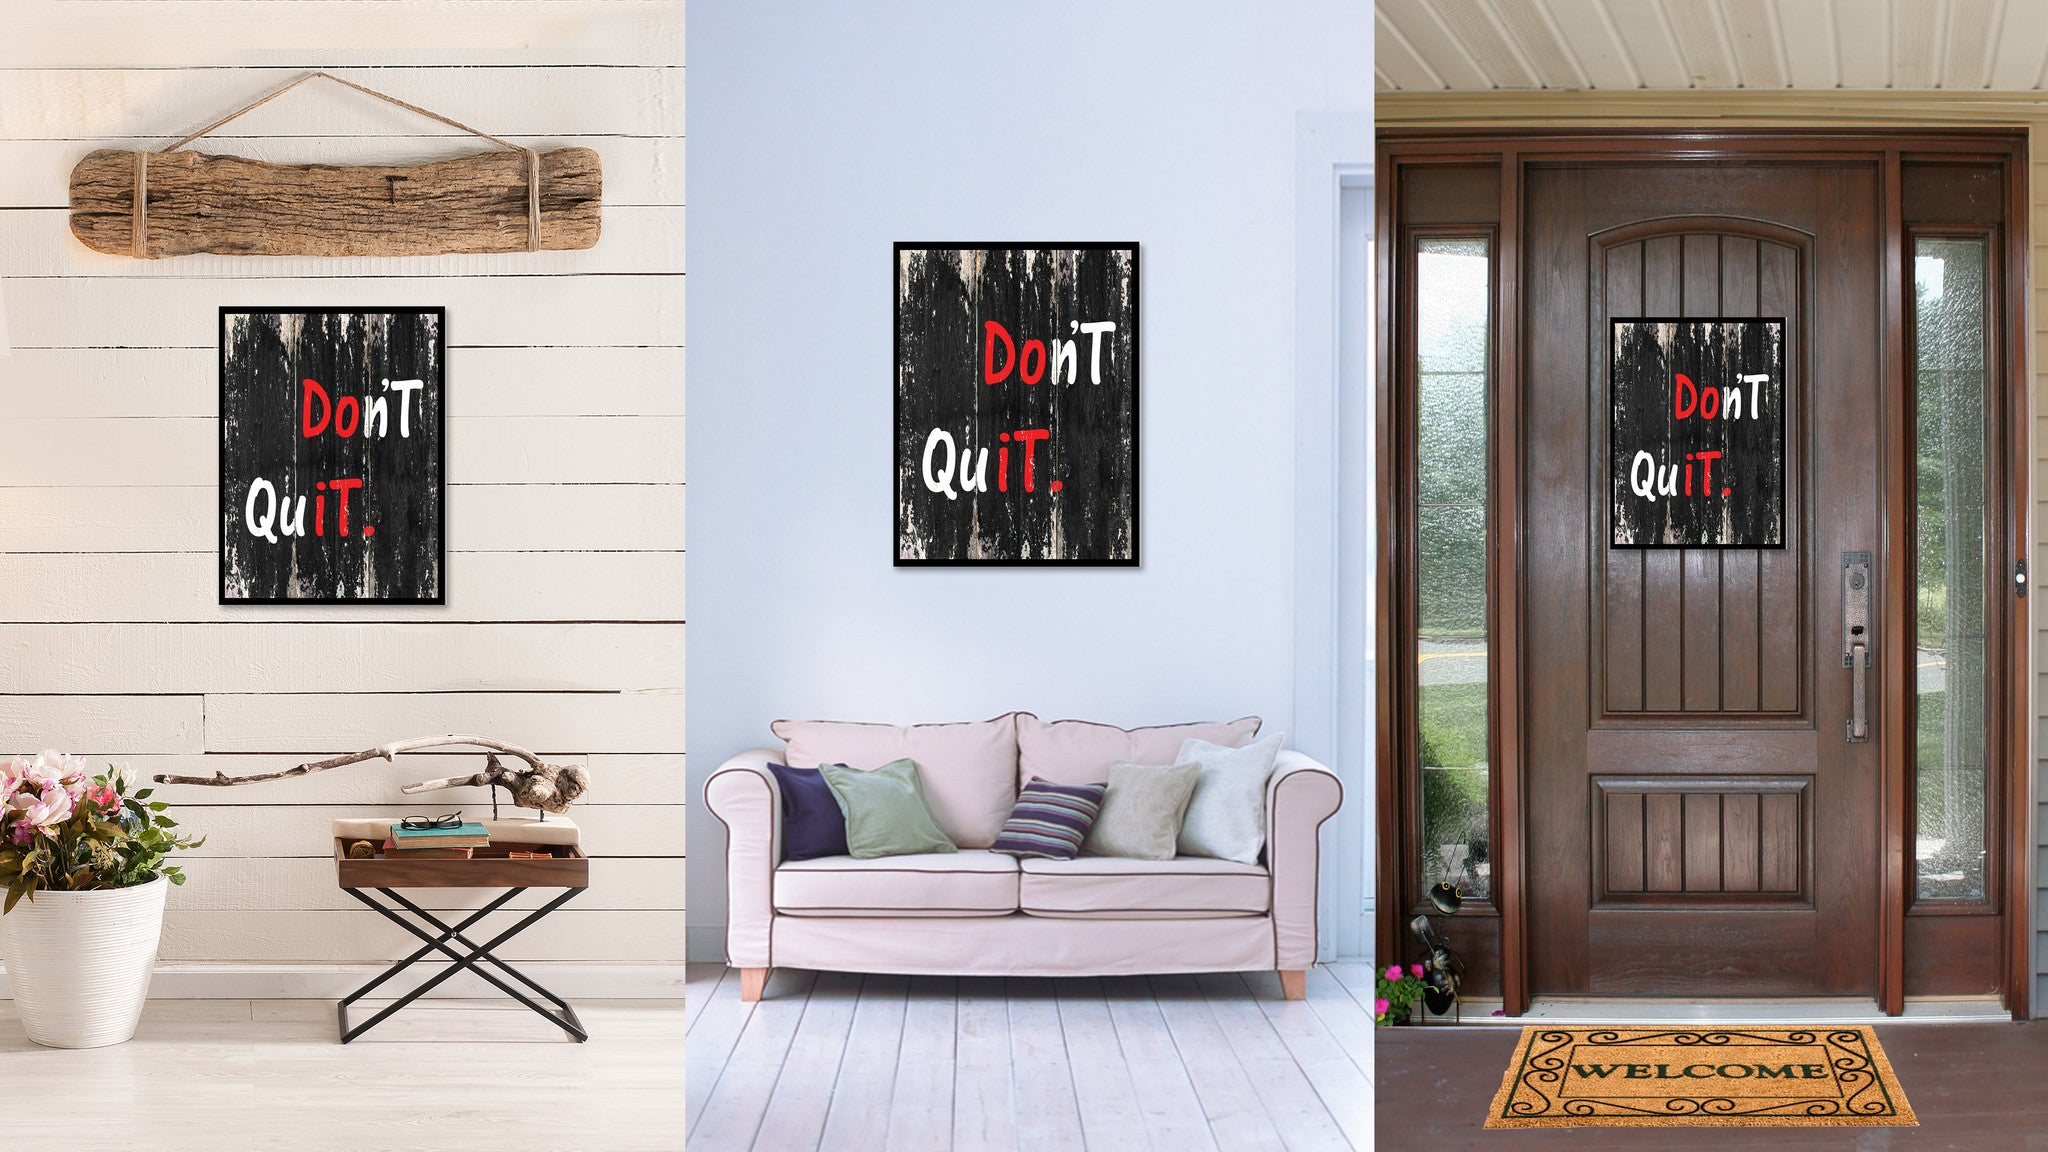 Don't quit Motivational Quote Saying Canvas Print with Picture Frame Home Decor Wall Art